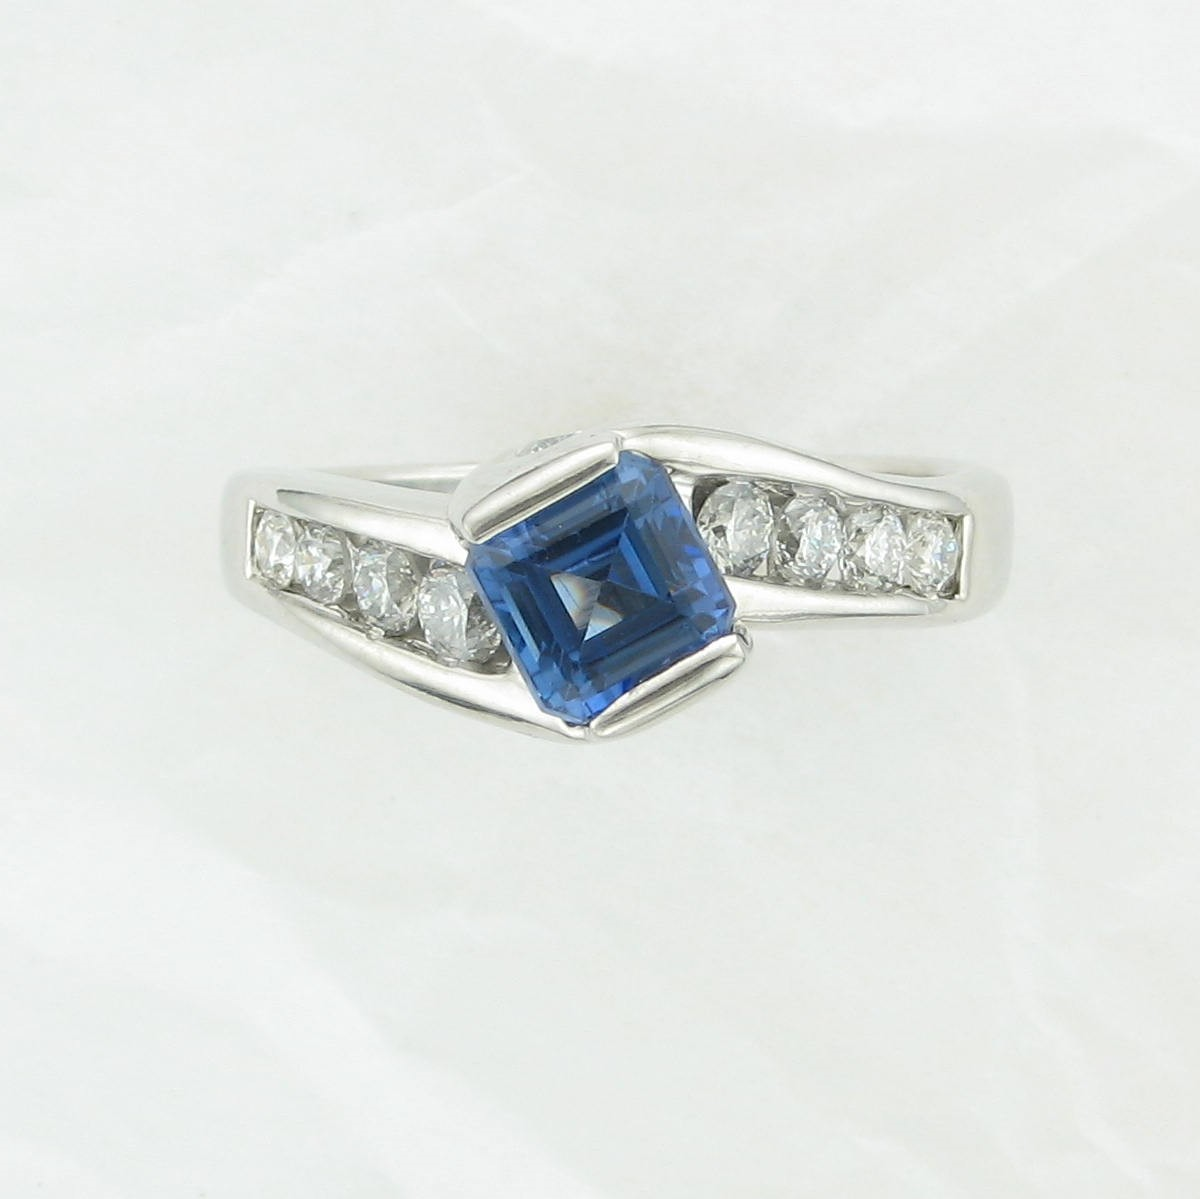 1.29ct Tanzanite & Diamond Ring set in 14K White Gold